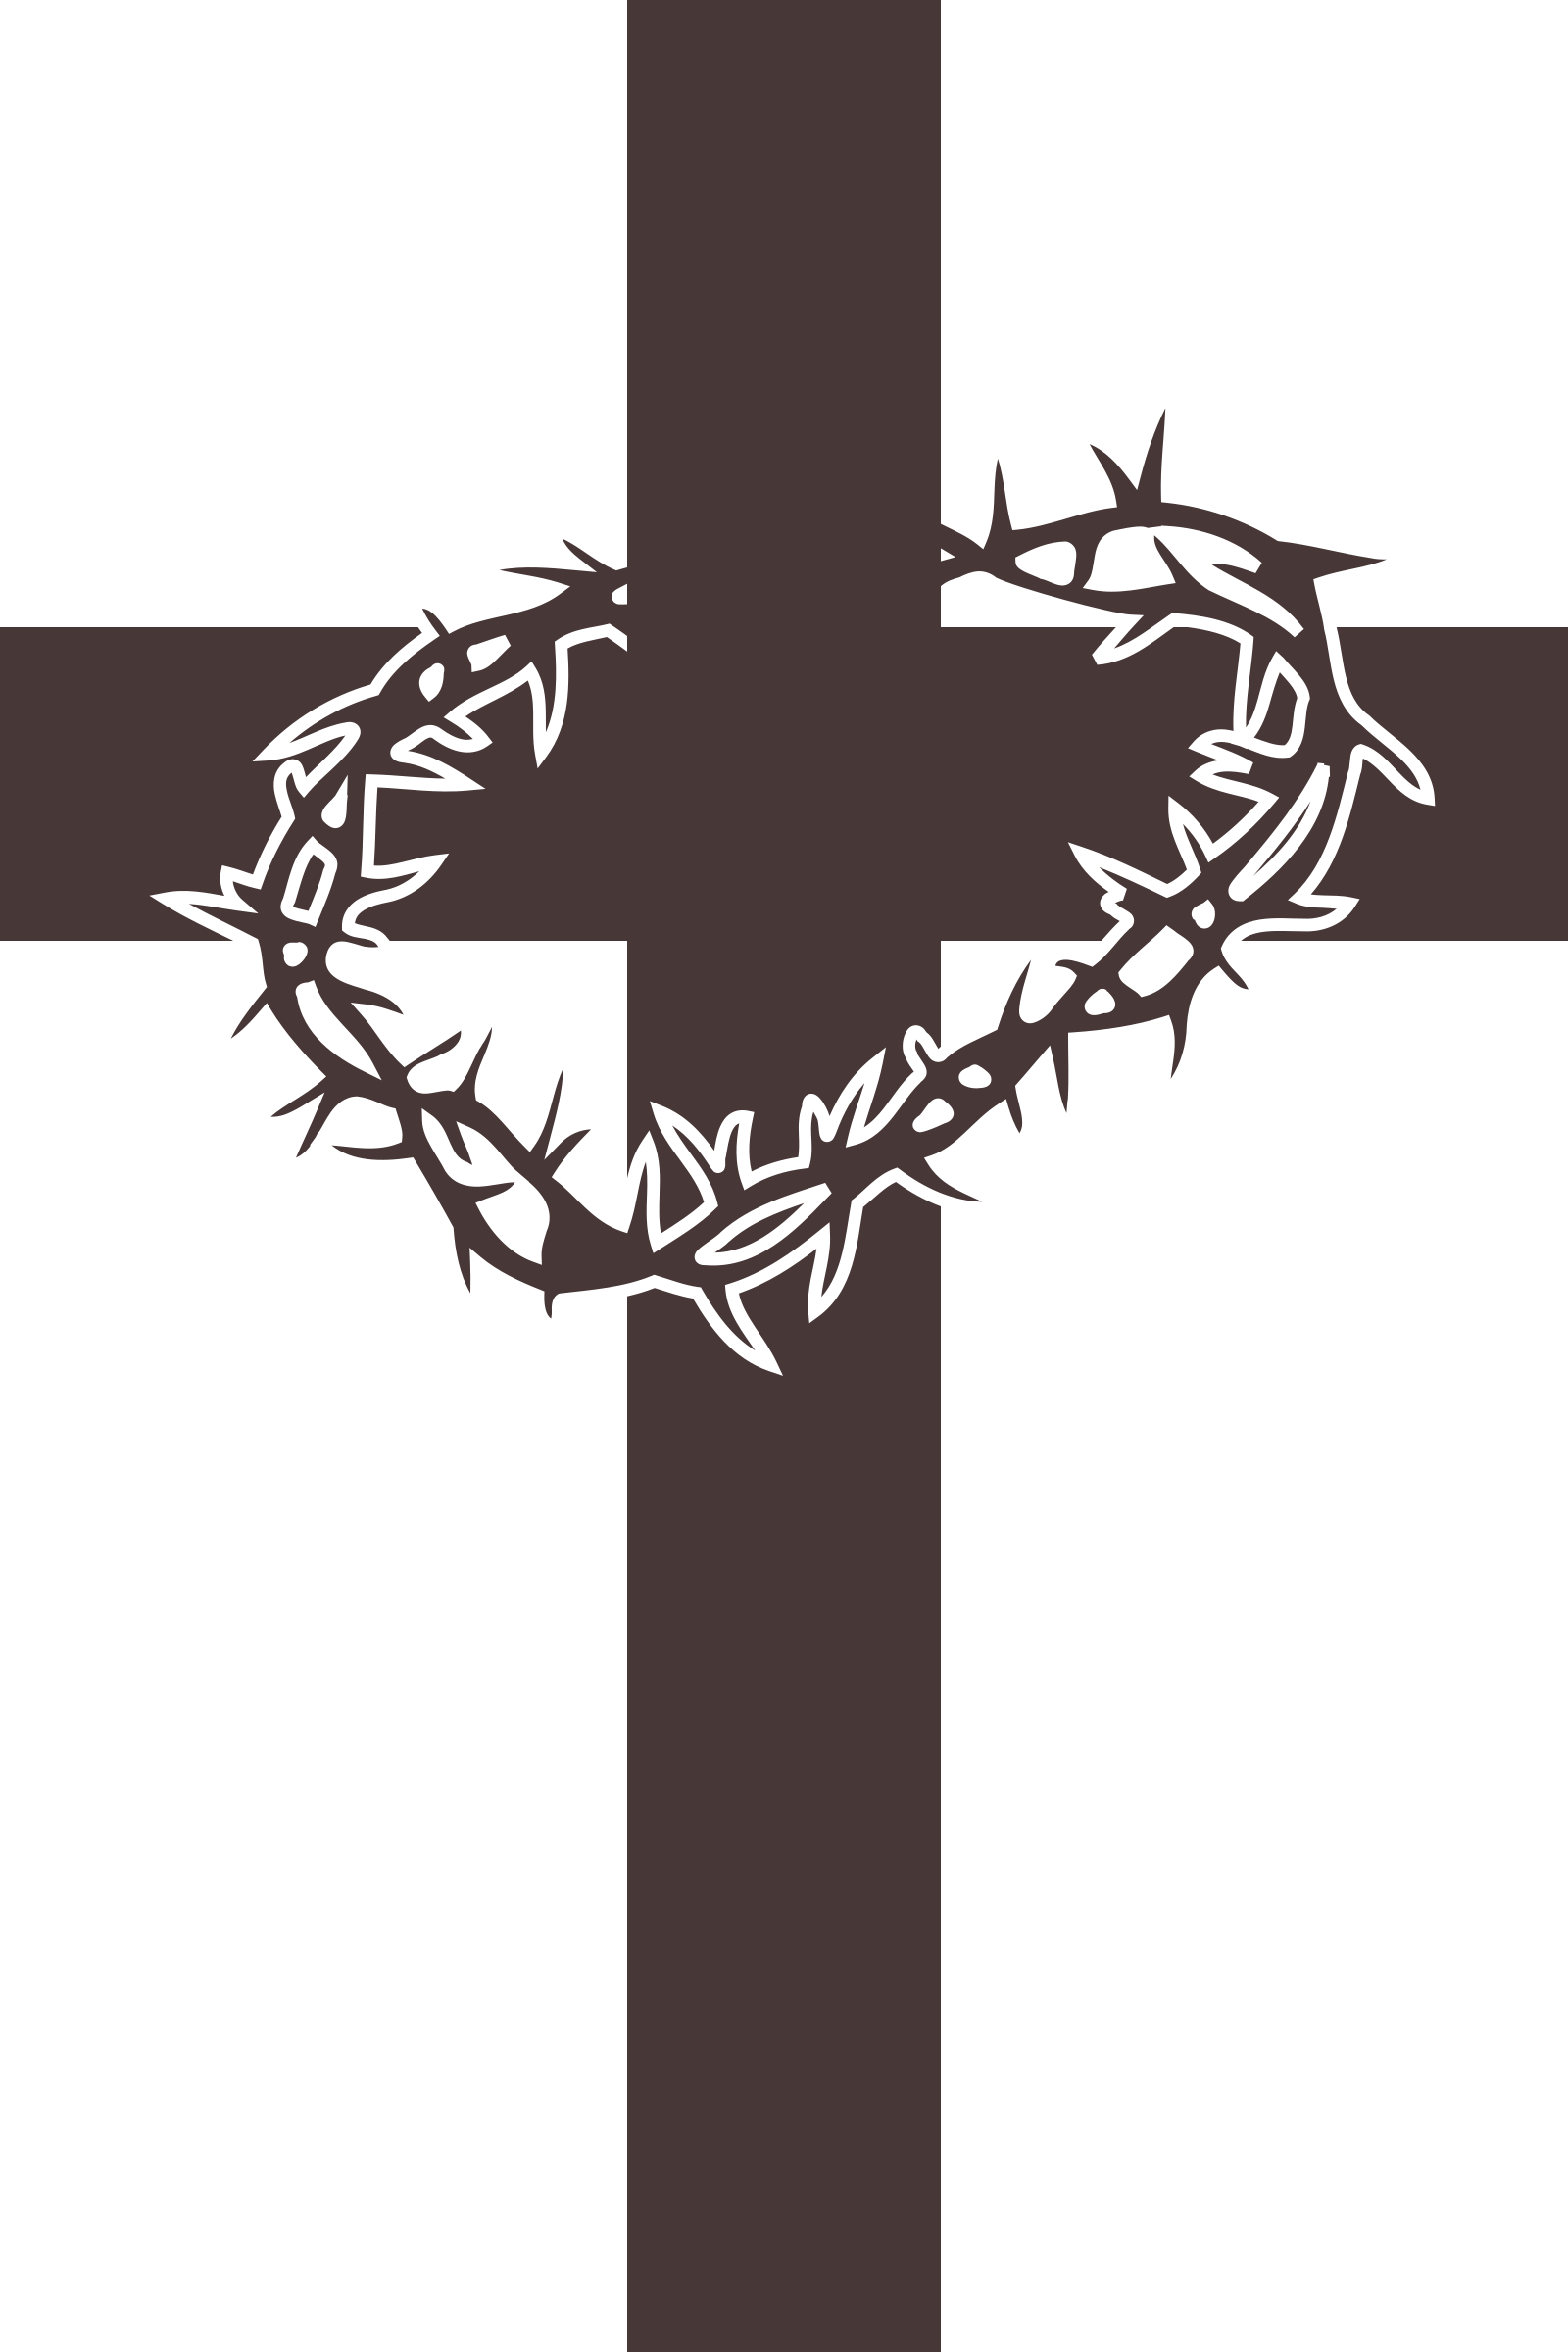 Cross and Thorns vector clipart image.